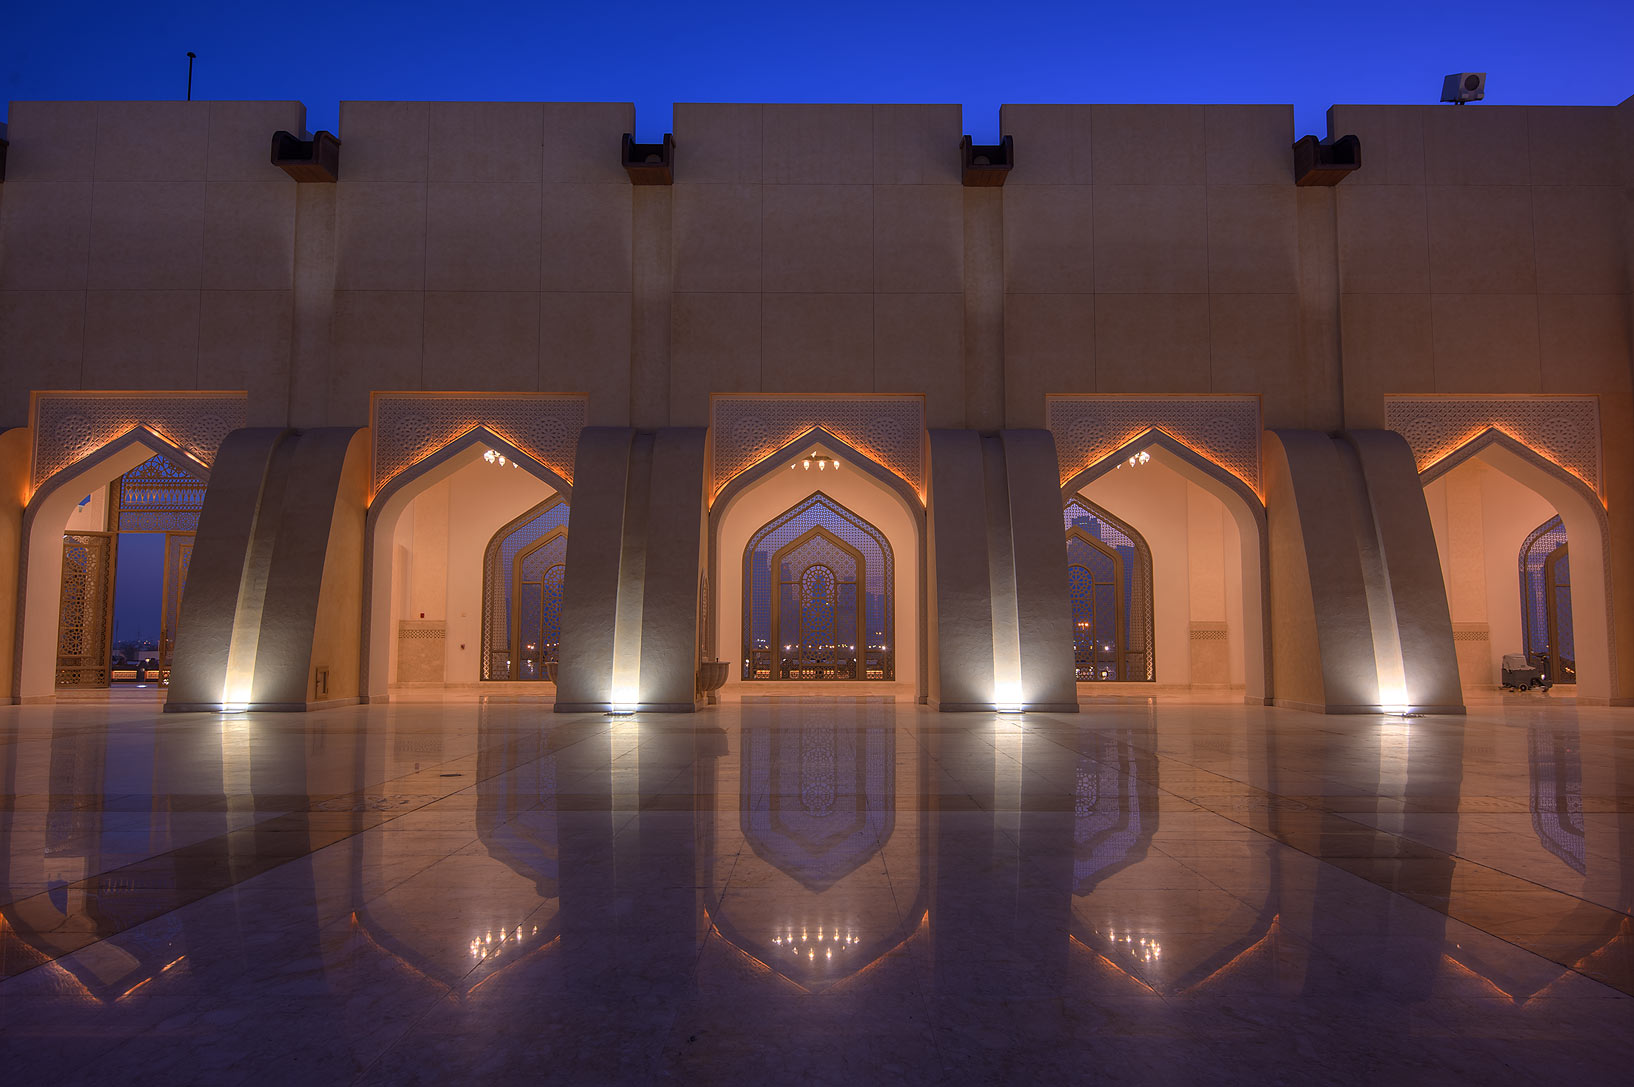 Walls of stone courtyard of State Mosque (Sheikh...Wahhab Mosque) at morning. Doha, Qatar